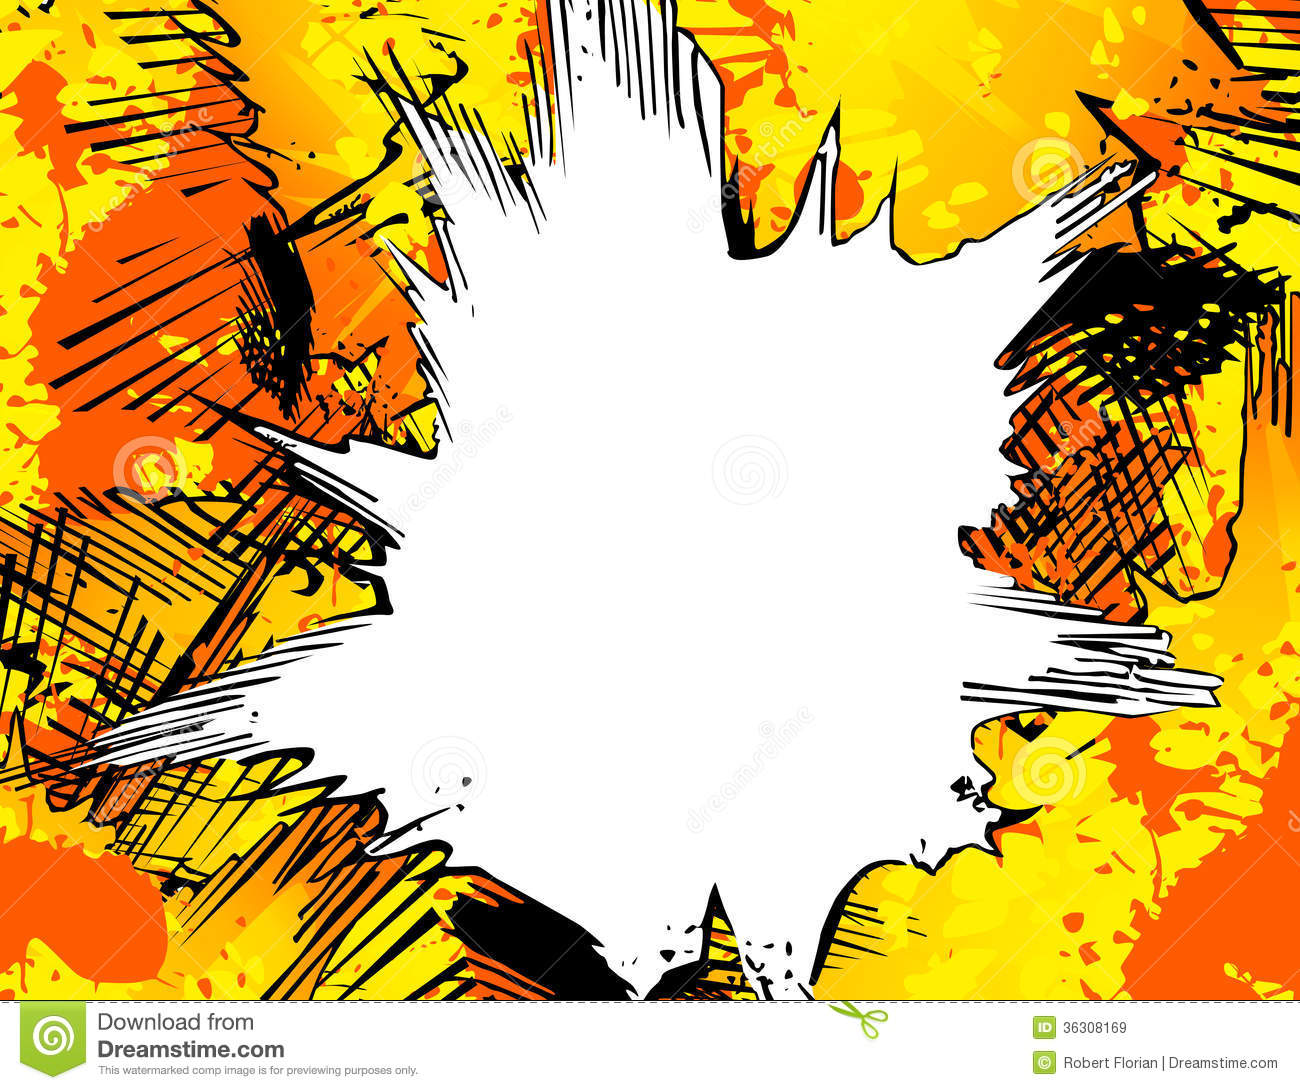 Free Comic Book Day Wallpaper: Abstract Explosion Background Stock Illustration